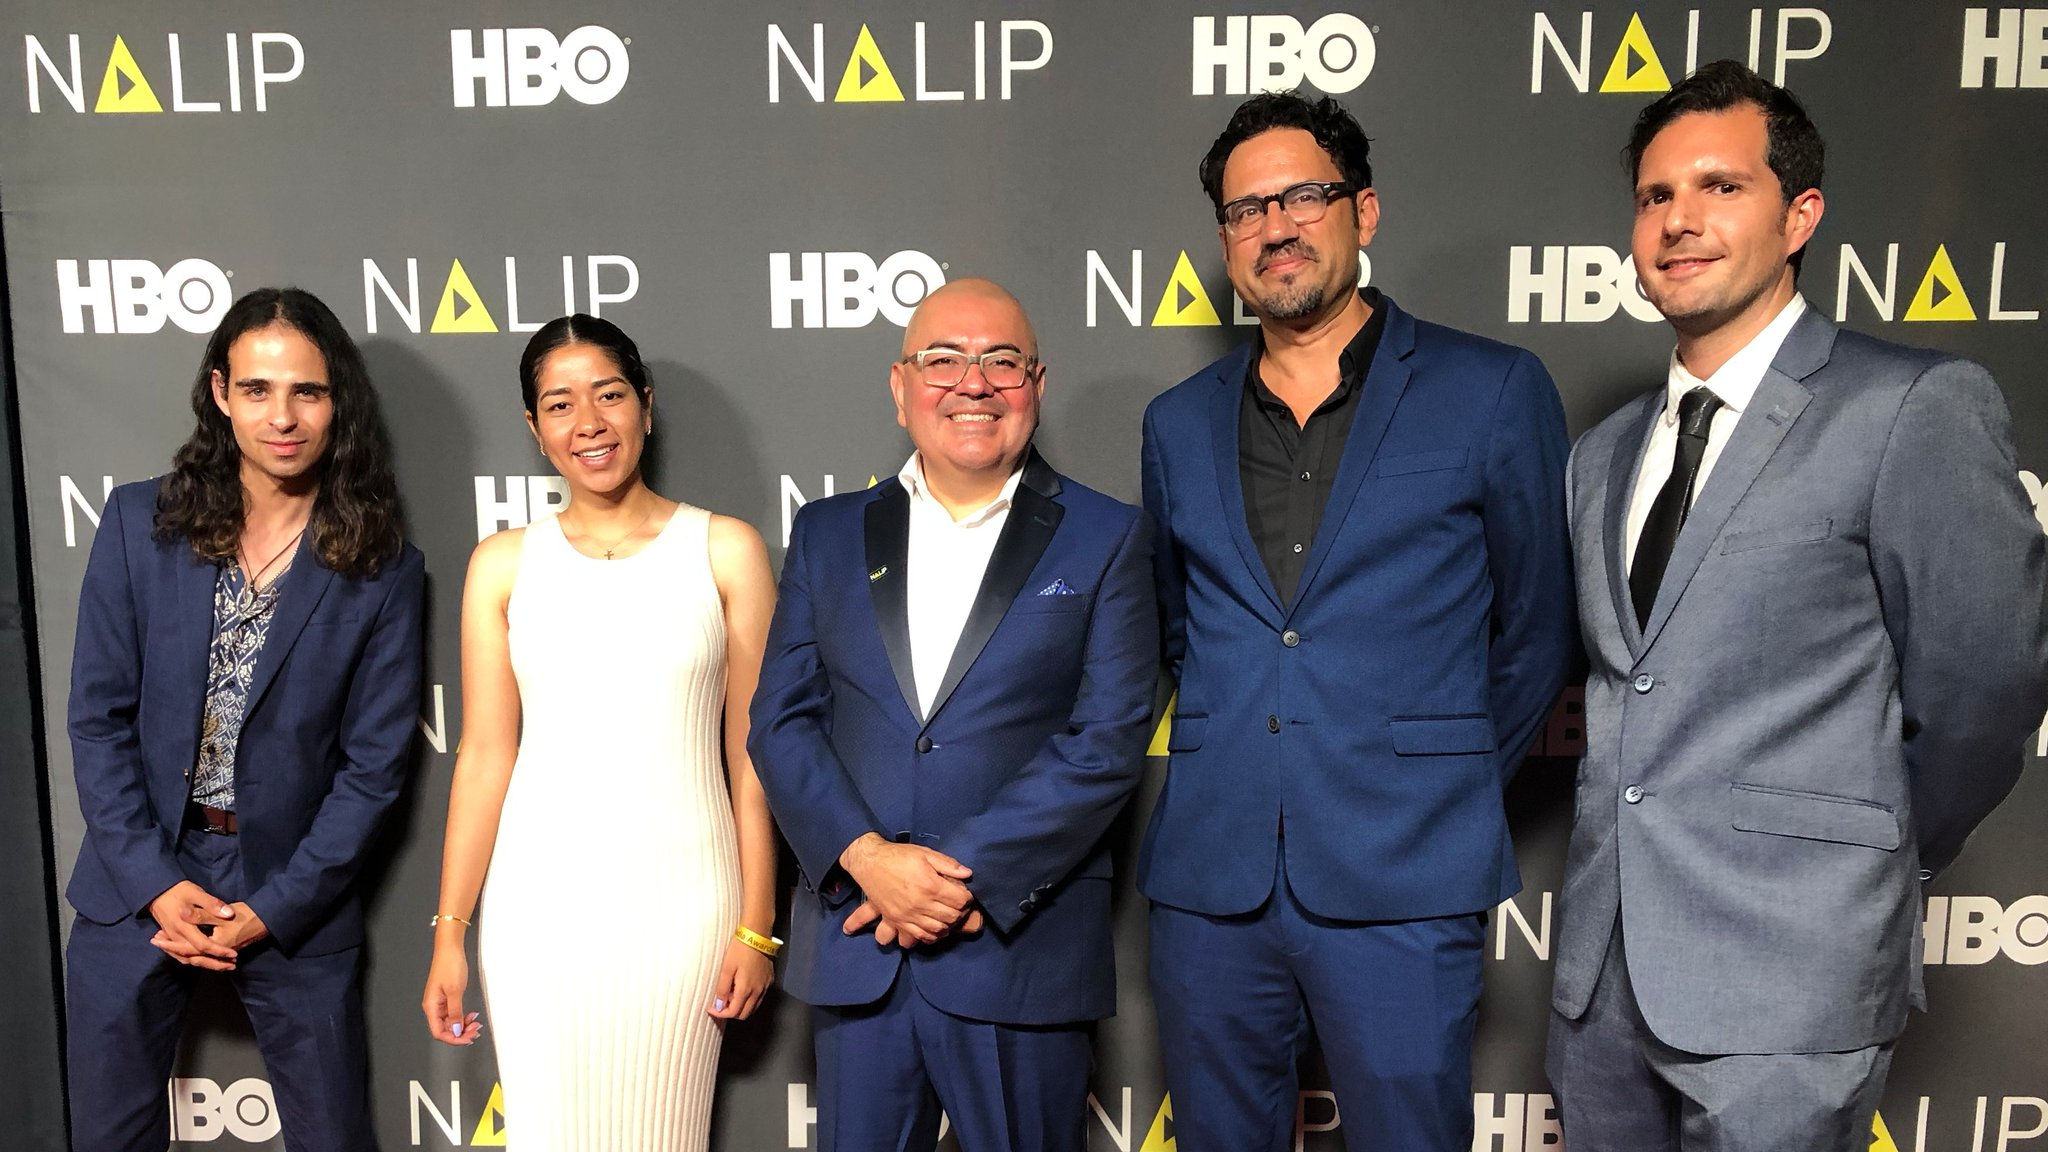 Congrats to our friends at @nalip_org for hosting an inspired 2019 summit and awards gala. ¡Bien hecho! @Univision is proud to stand with you. #WeAreInclusion https://t.co/k40QrBOv4W